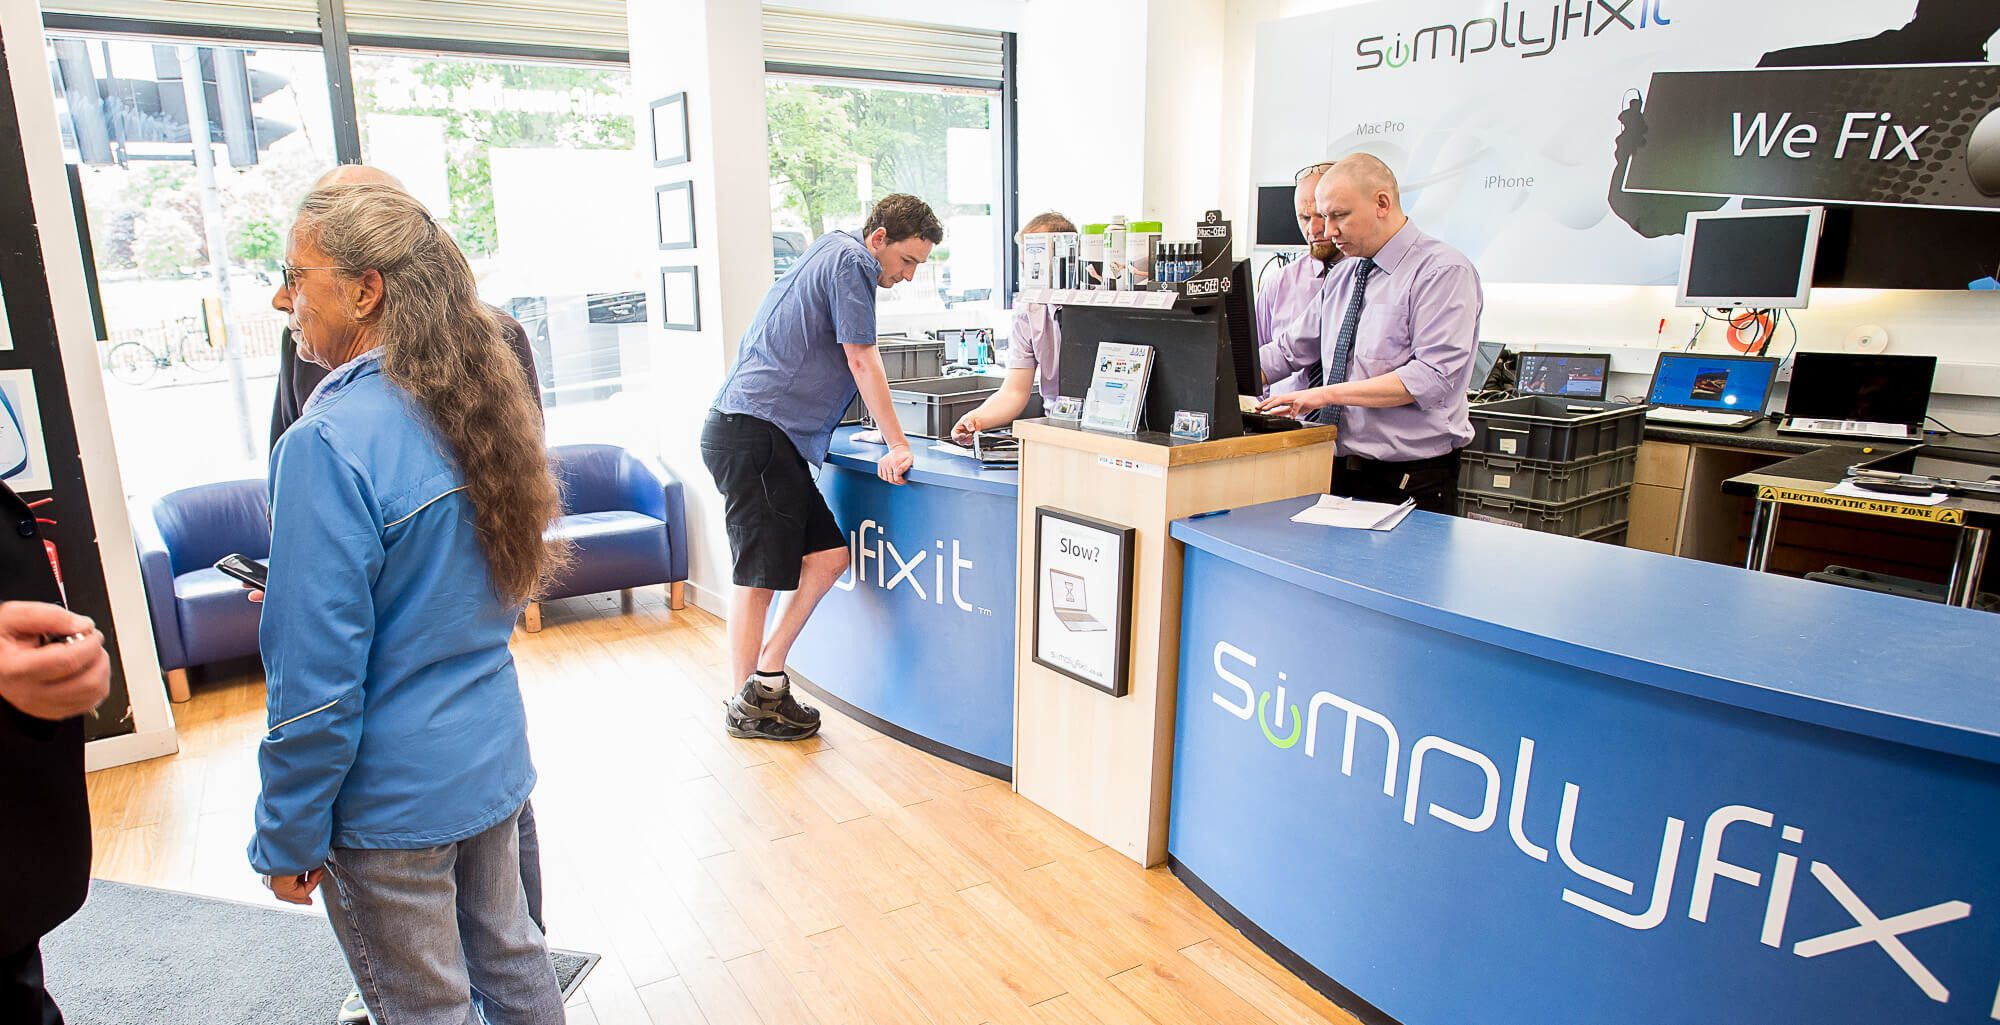 Inside the SimplyFixIt store at Bruntsfield Place